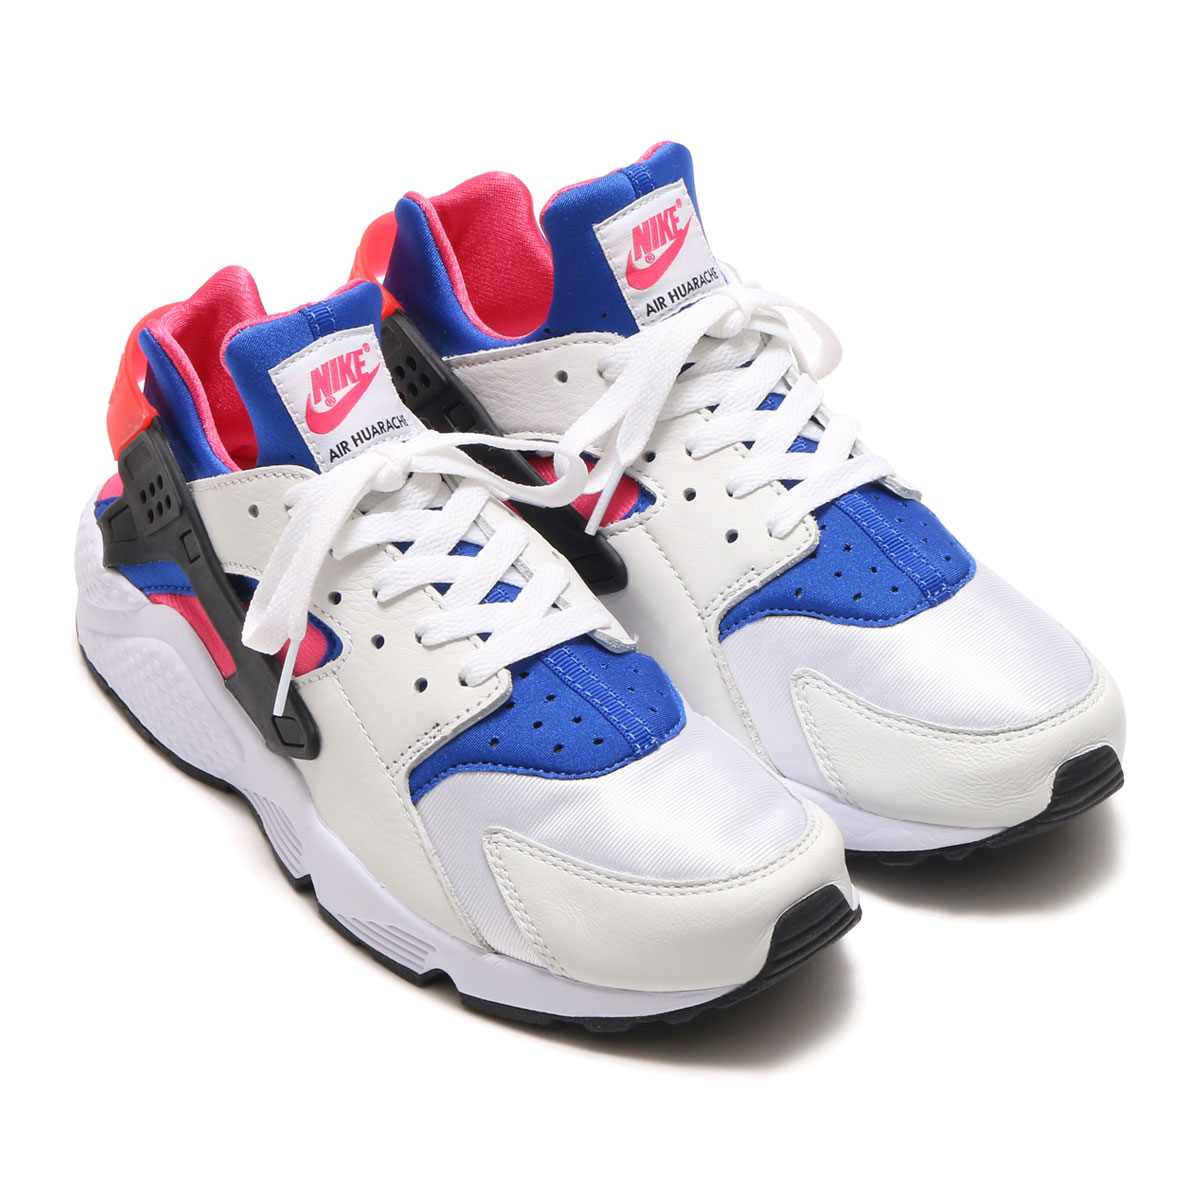 NIKE AIR HUARACHE RUN \u002791 QS (?????????? 91 QS) (WHITE/GAME ROYAL/BLACK/DYNAMIC  PINK) 17HO-S